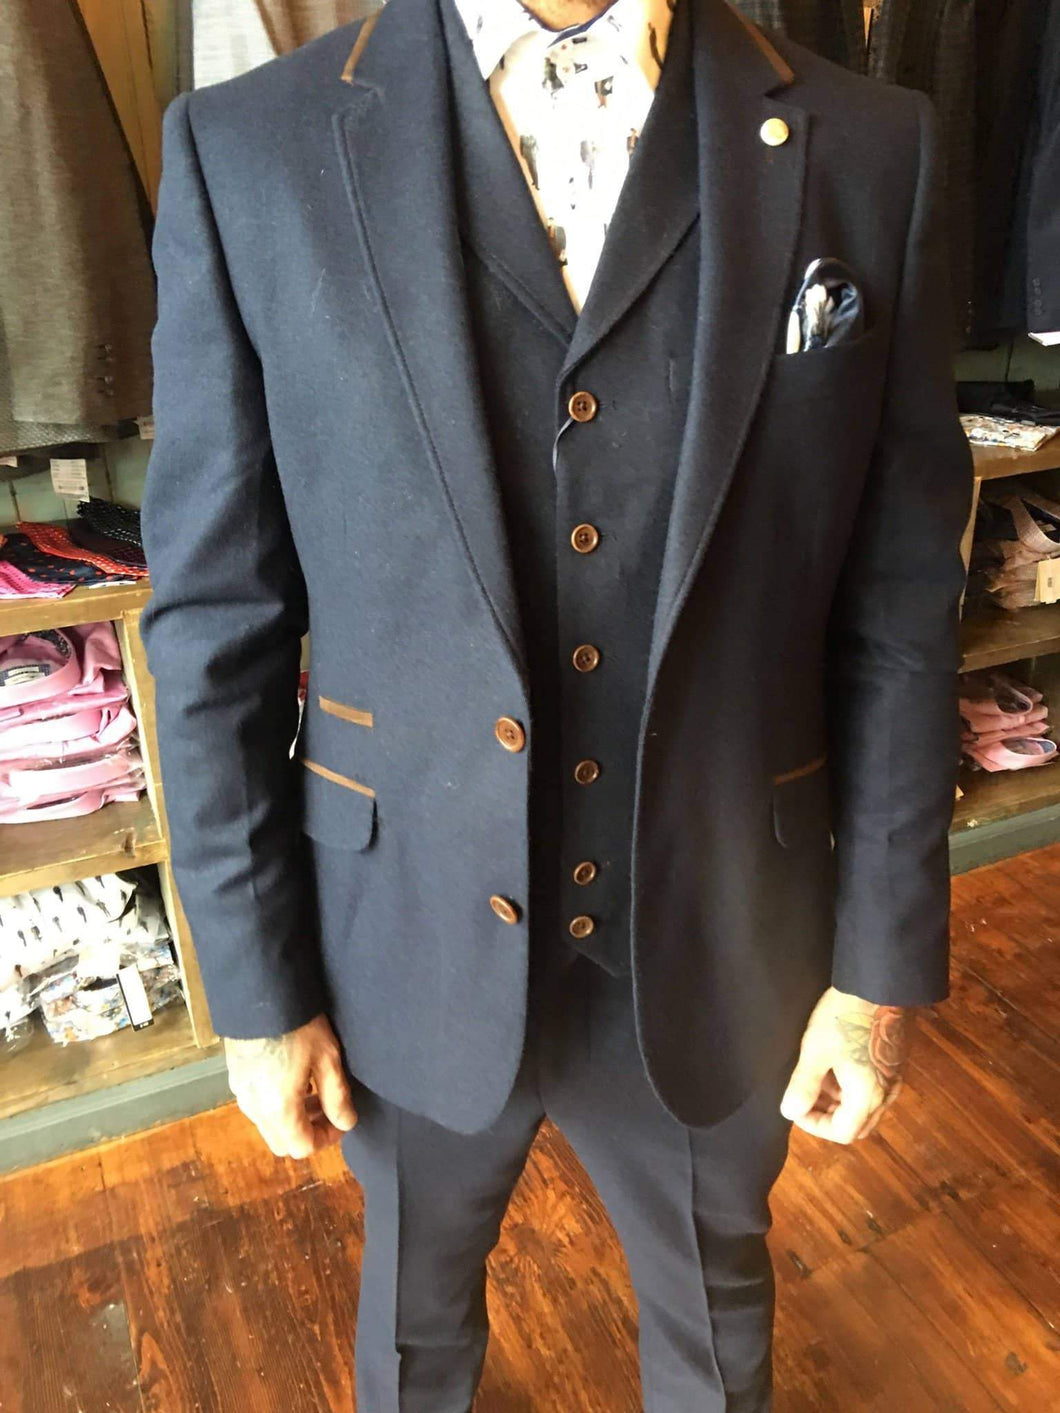 Guide London Wool Blend Slim Fit Suit Blazer With Suedette Trim Details - Navy 38